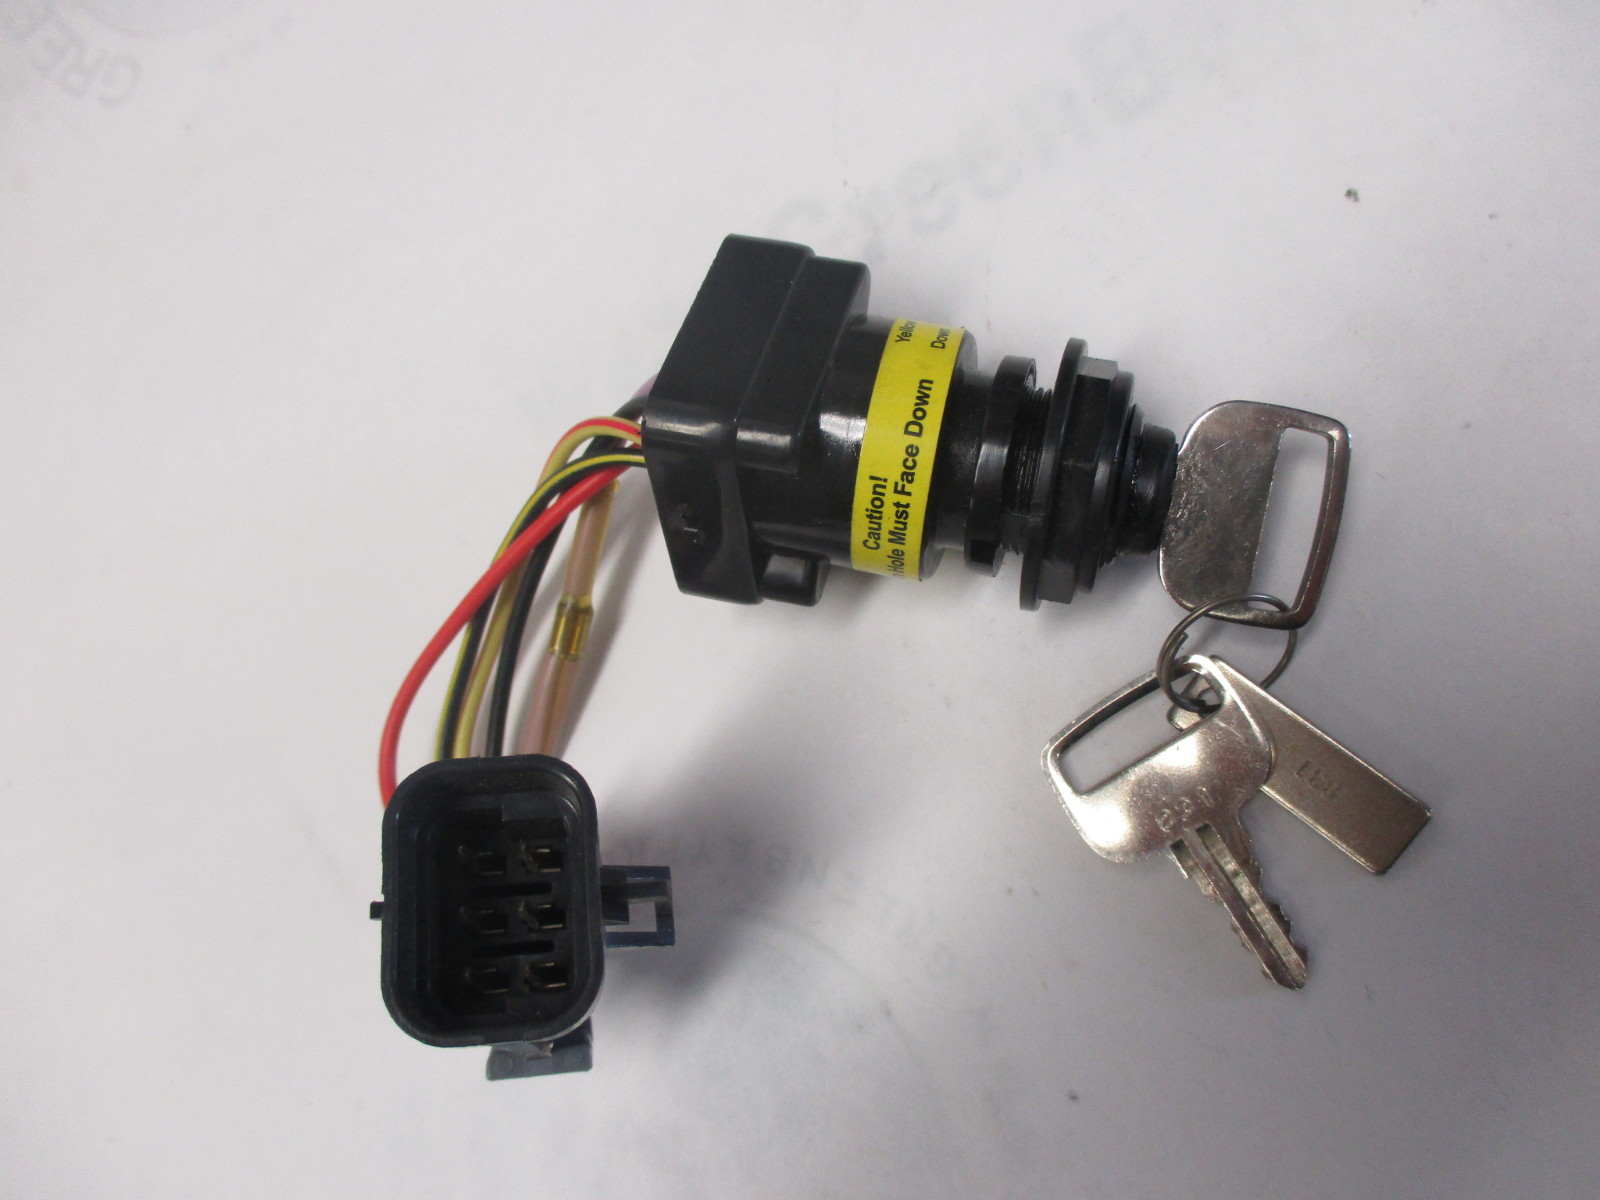 gb492016179 mercury marine outboard boat ignition switch and key 2006 and newer 6 wire pin 214716835 87 897716k01 mercury marine outboard boat ignition switch and key